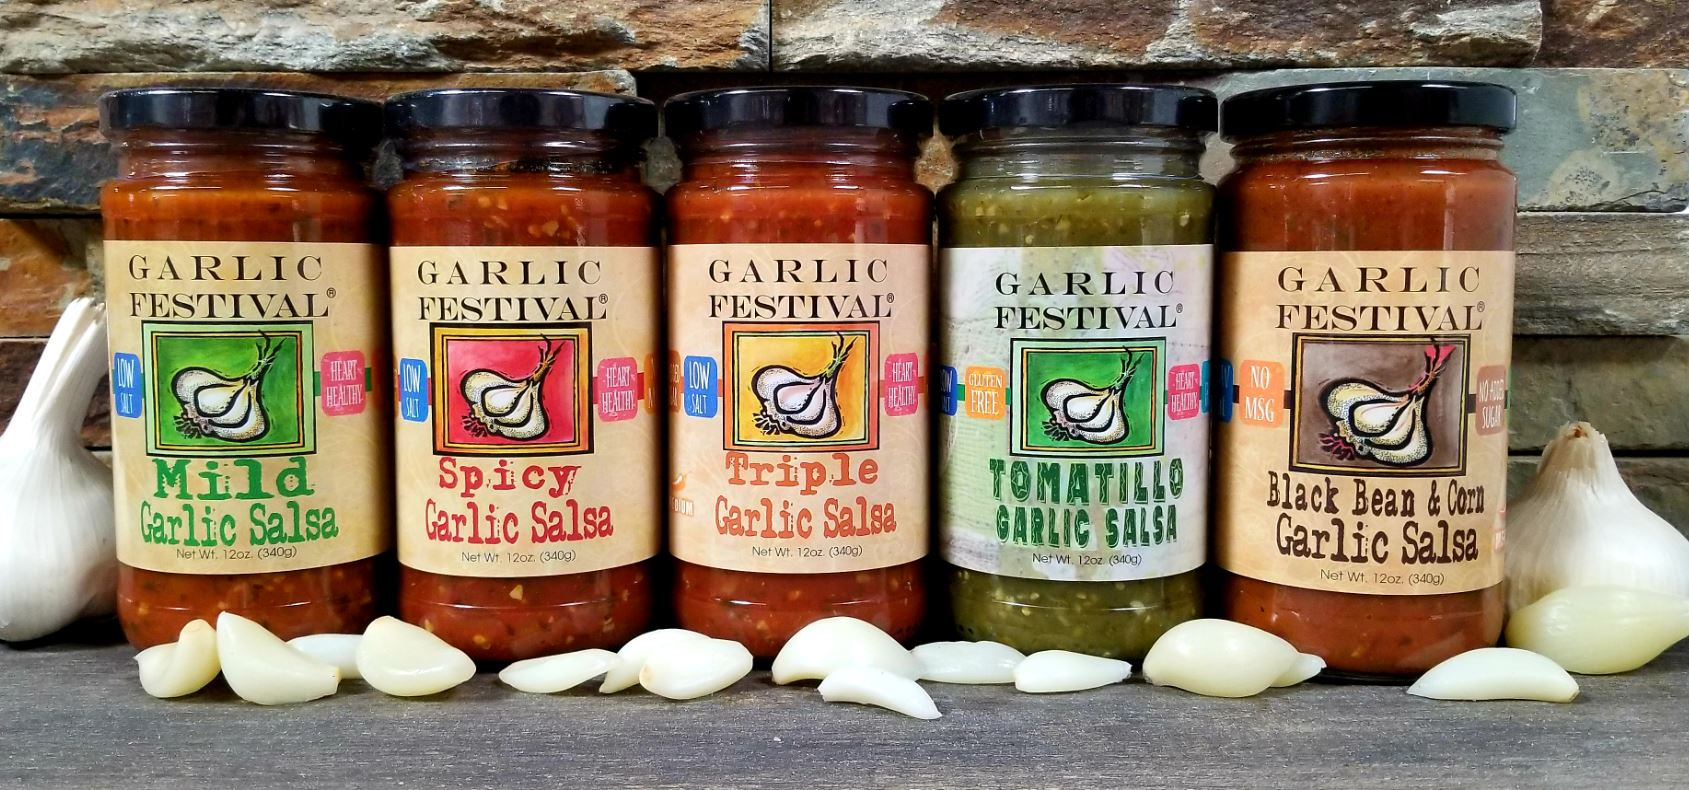 Garlic Festival Foods Garlic Salsas & Hot Sauces